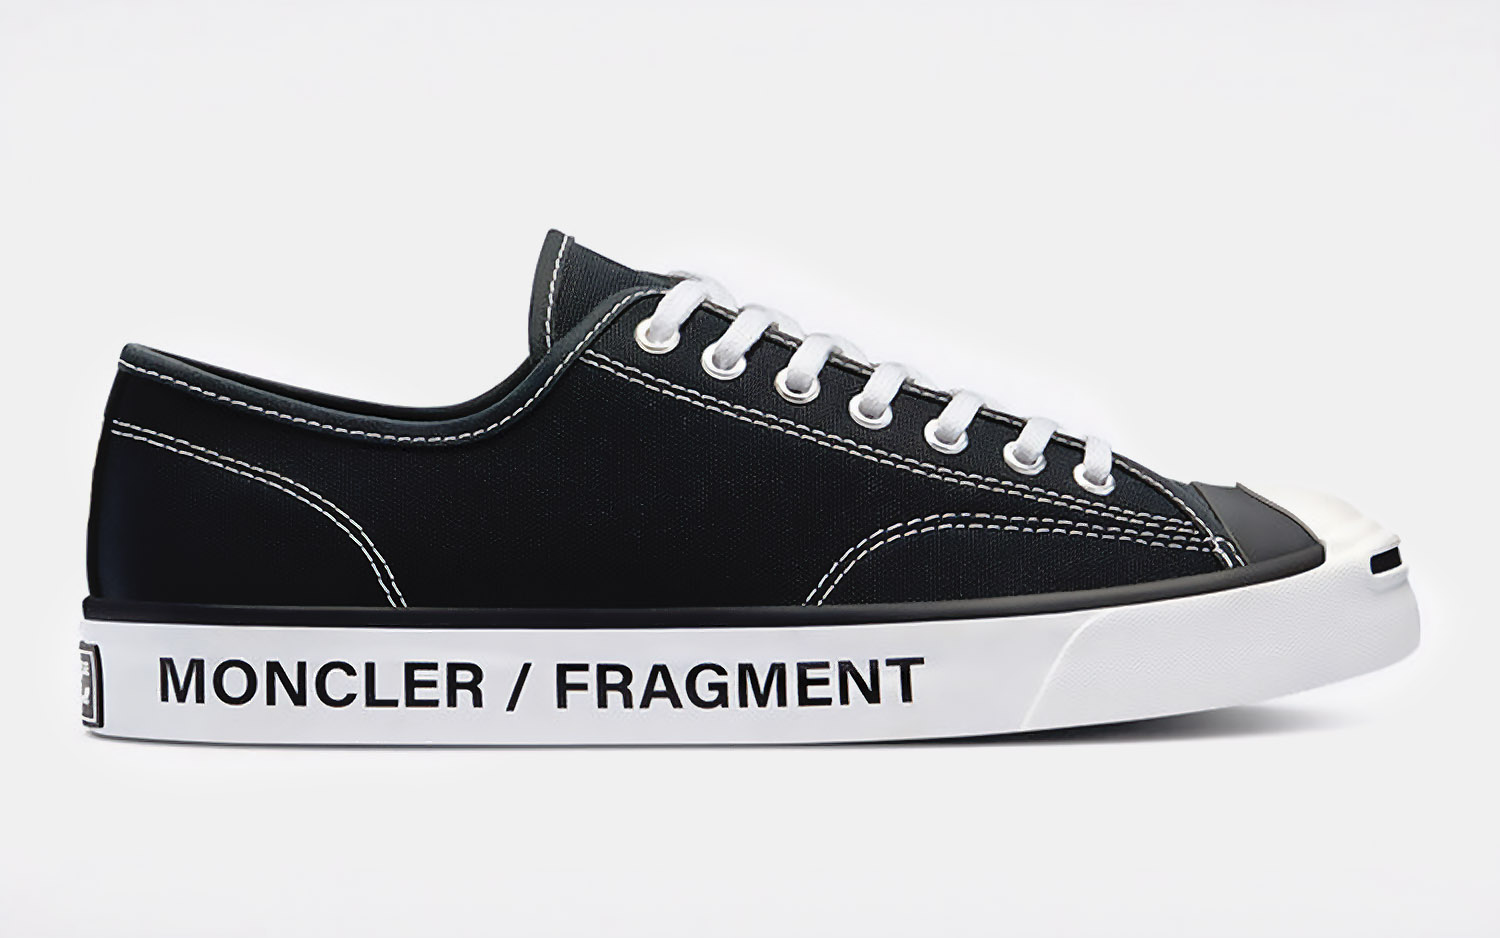 7 Moncler FRGMT + Converse Jack Purcell Sneakers